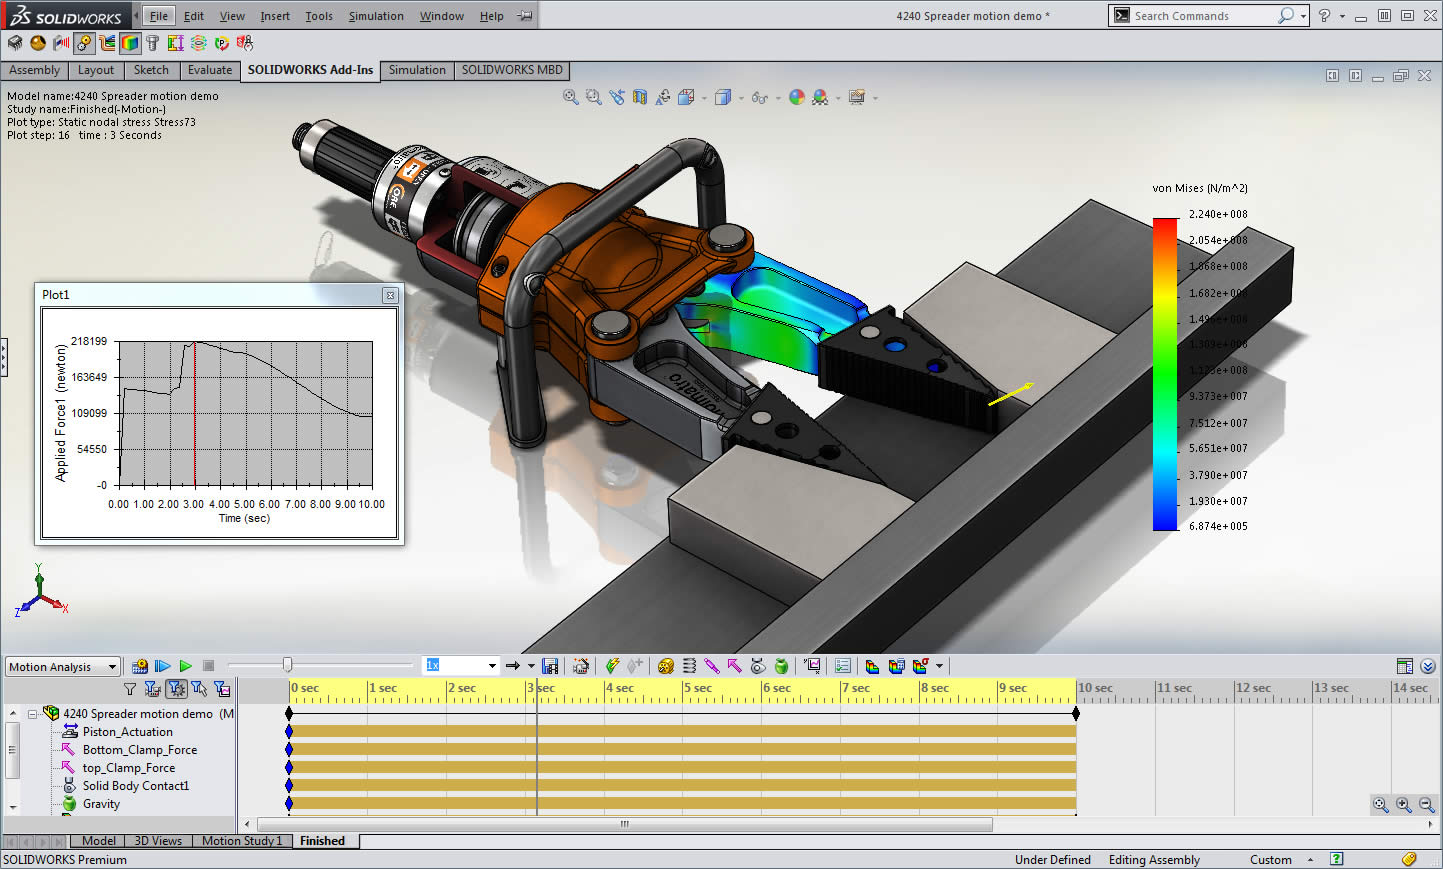 solidworks-motion-analysis-study